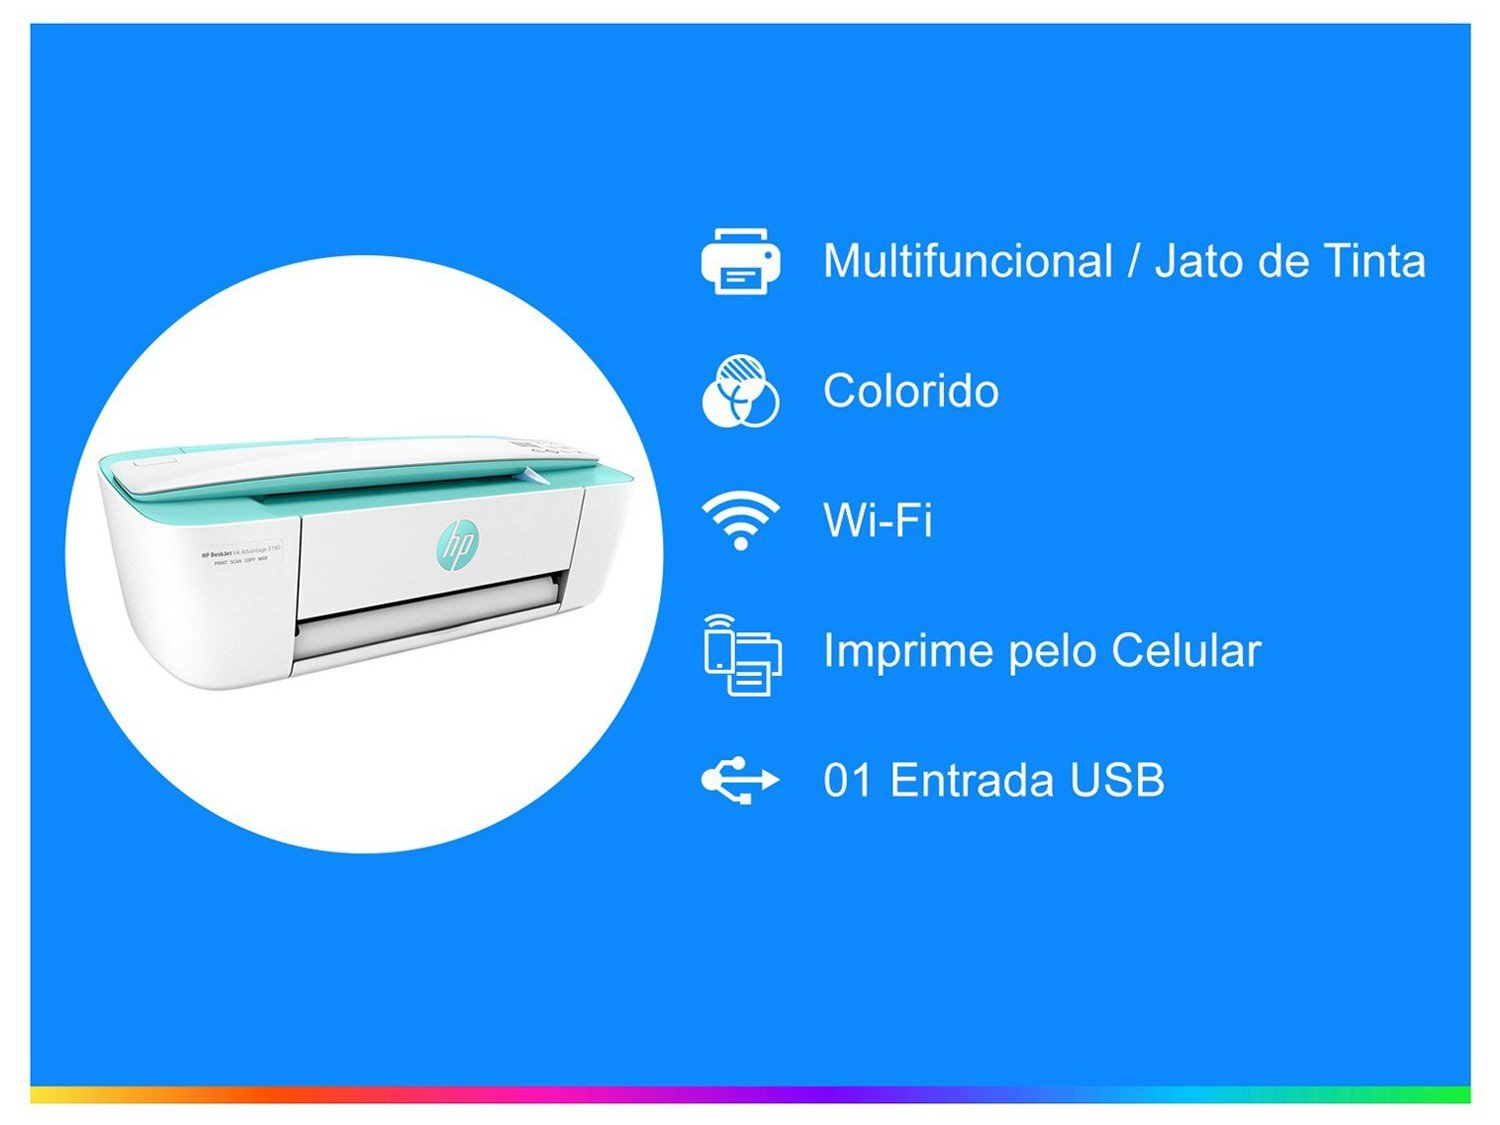 Foto 2 - Multifuncional HP Deskjet Ink Advantage 3790 - Jato de Tinta Colorida LCD Wi-Fi